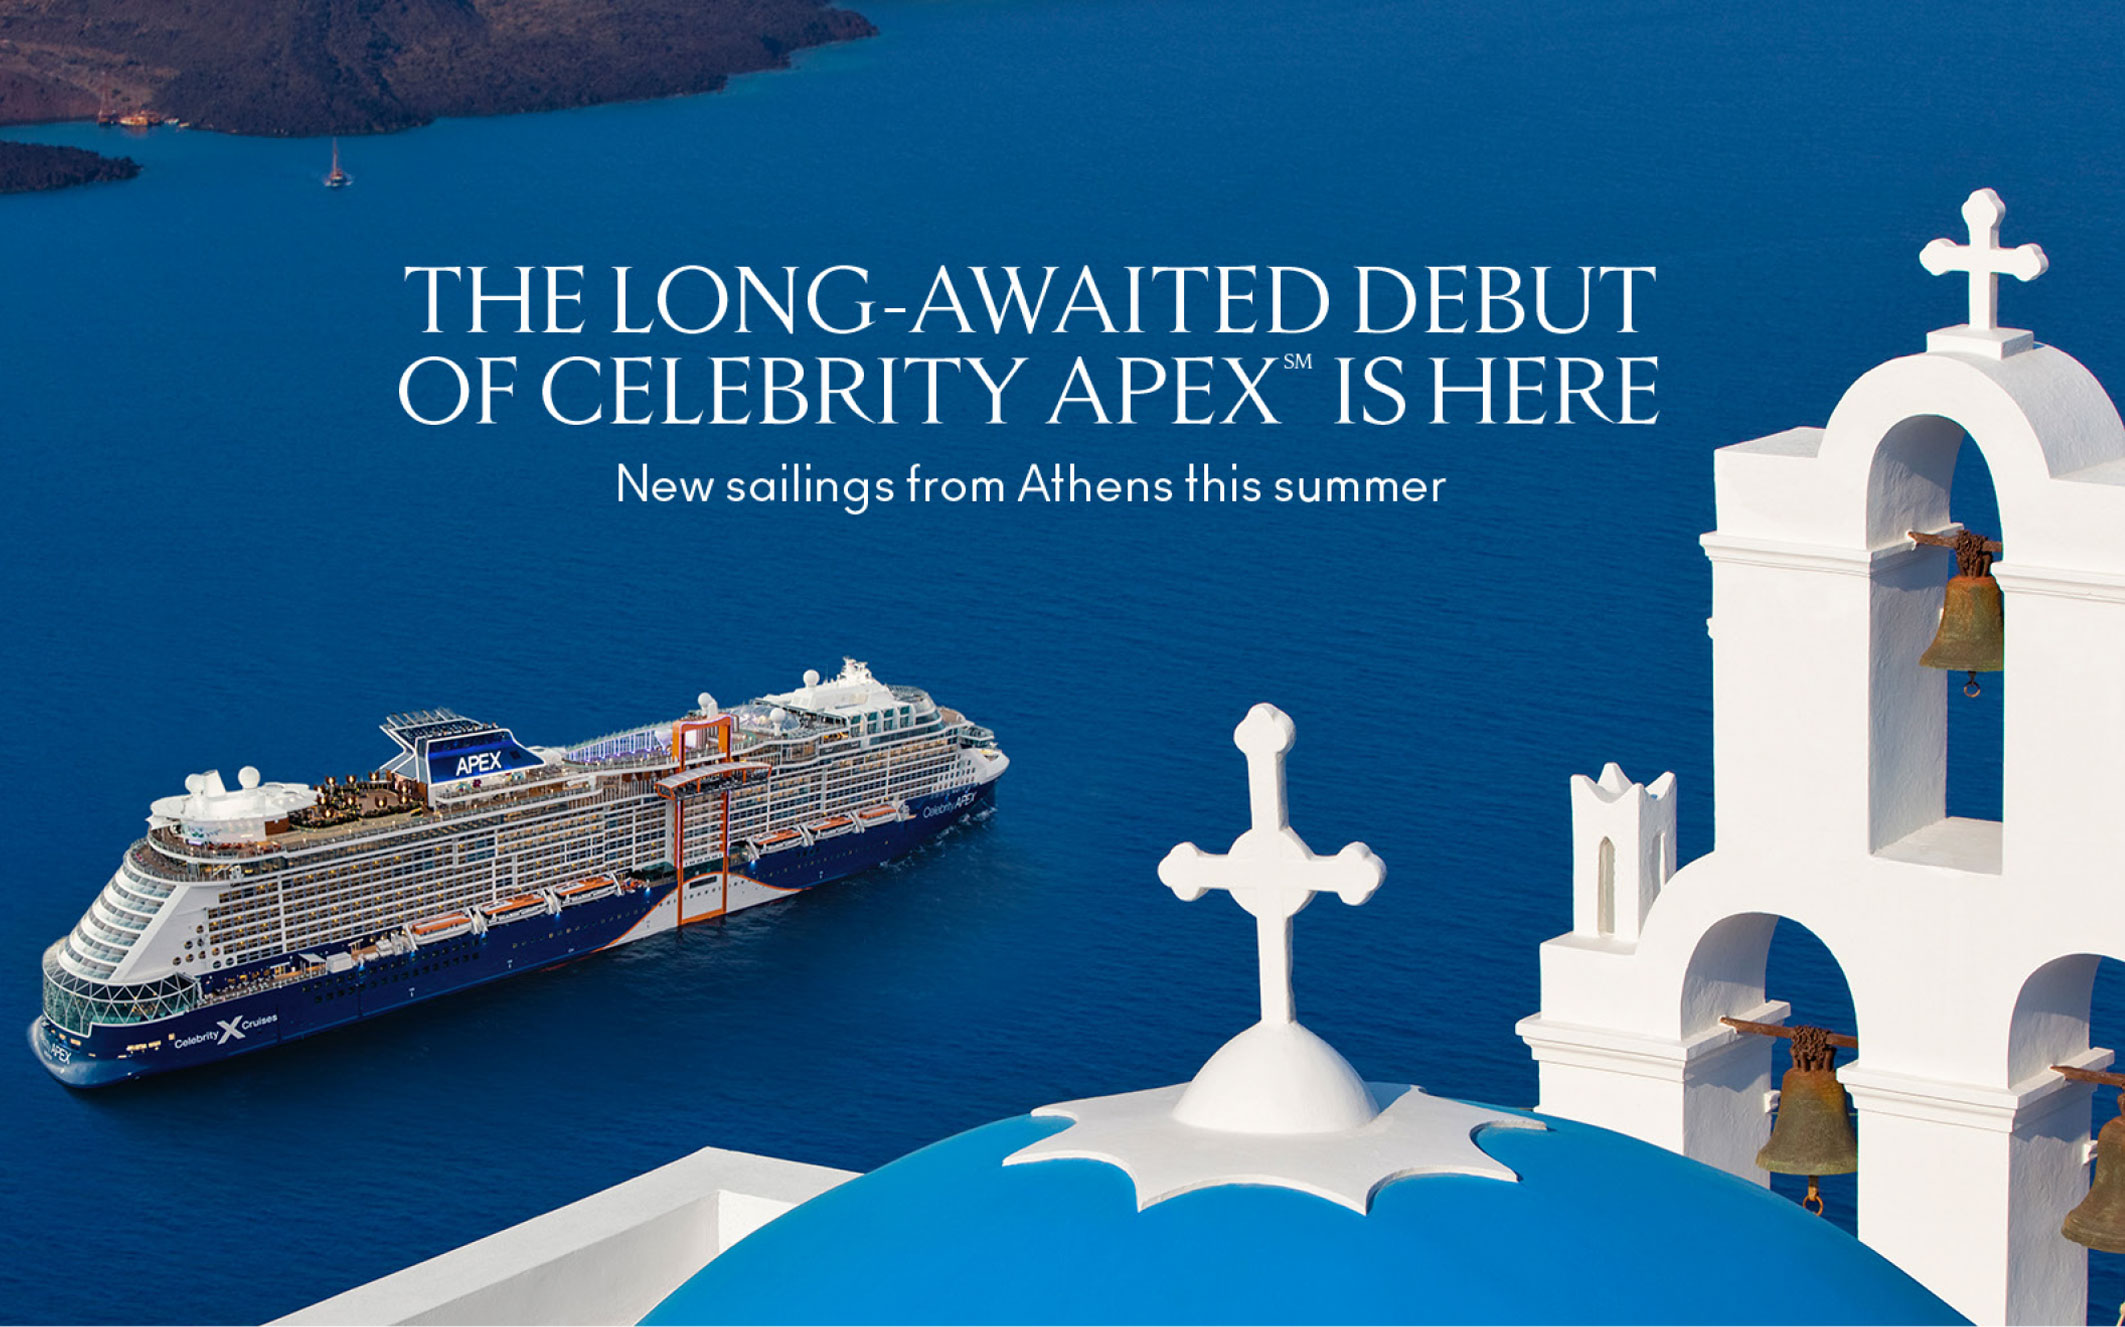 Let's Go – The Debut of Celebrity Apex is Here